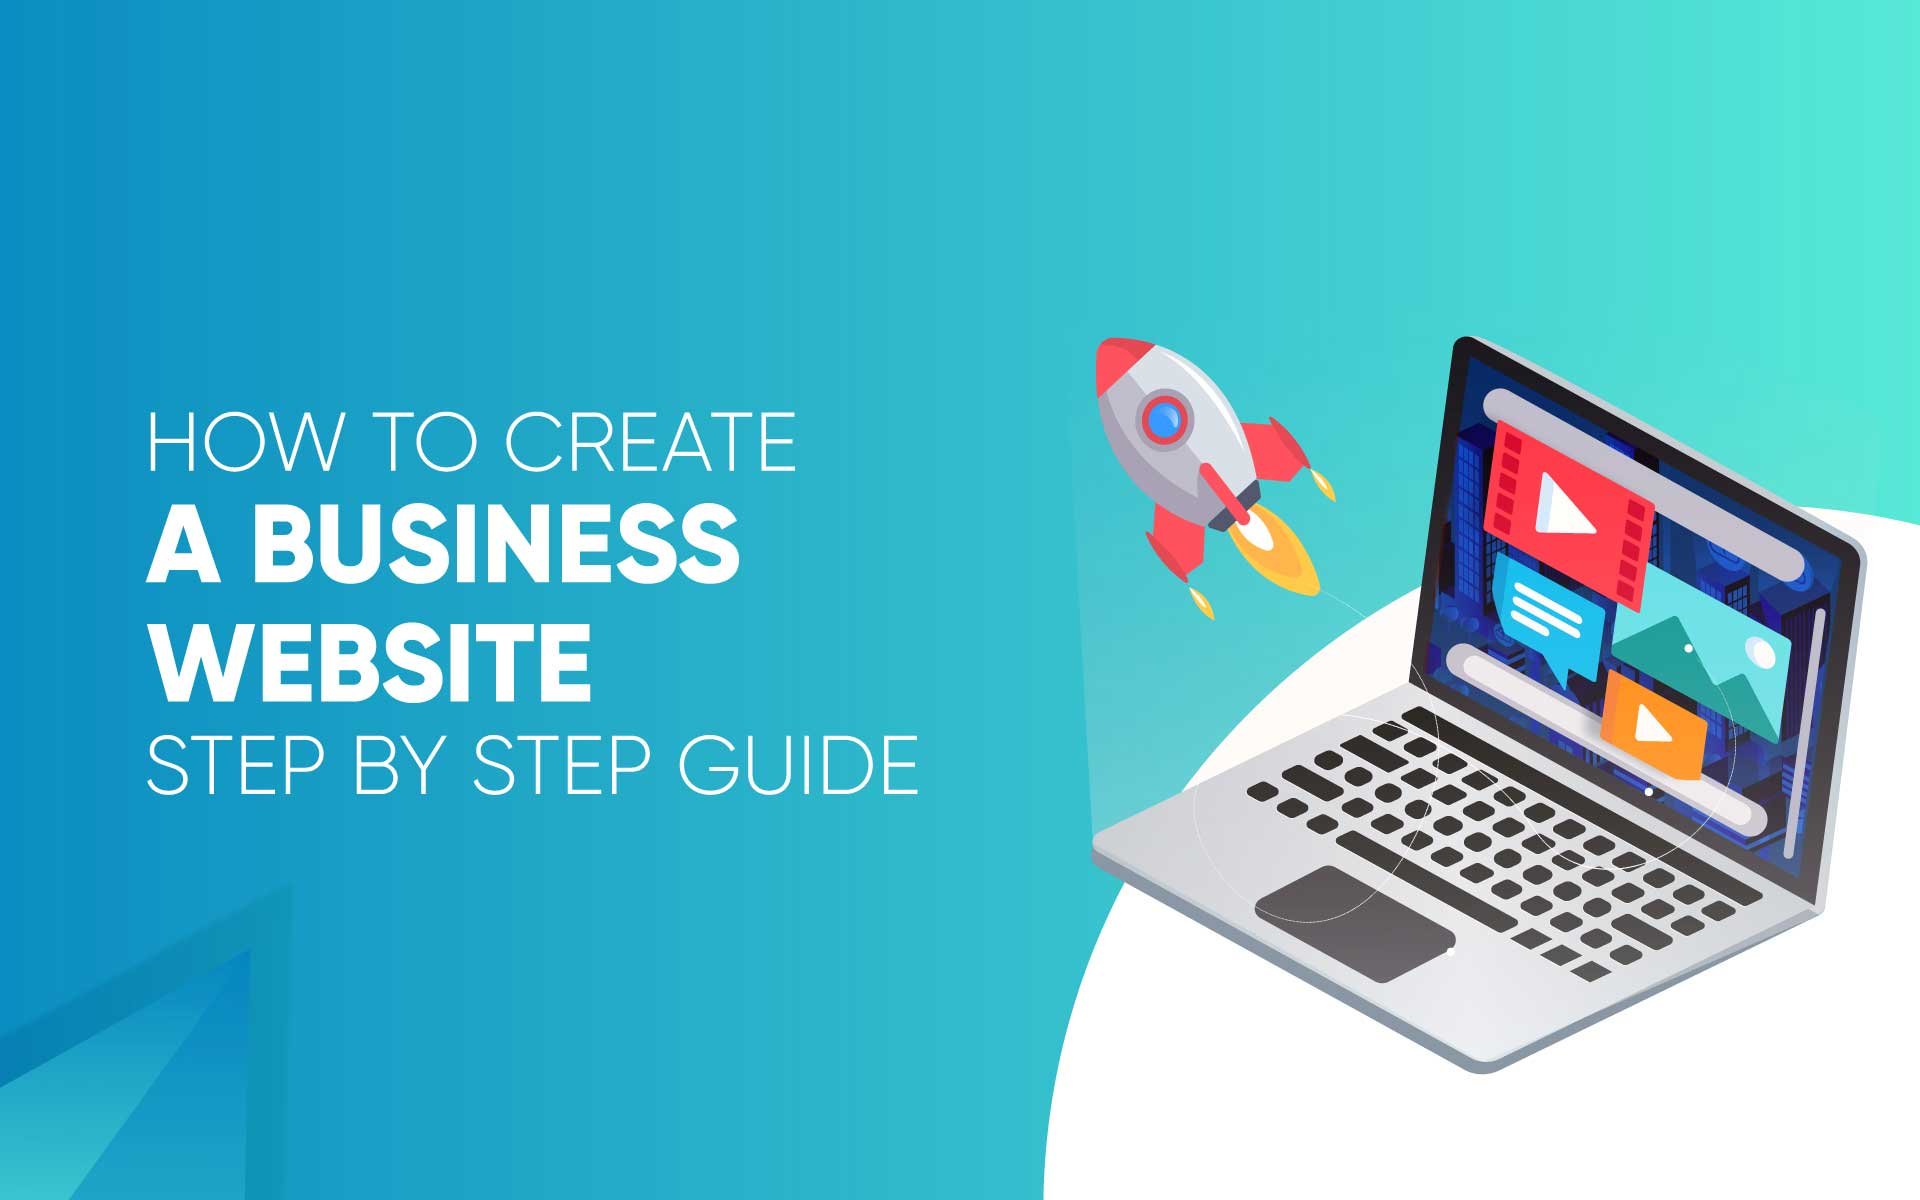 How to Create a Business Website Step by Step Guide